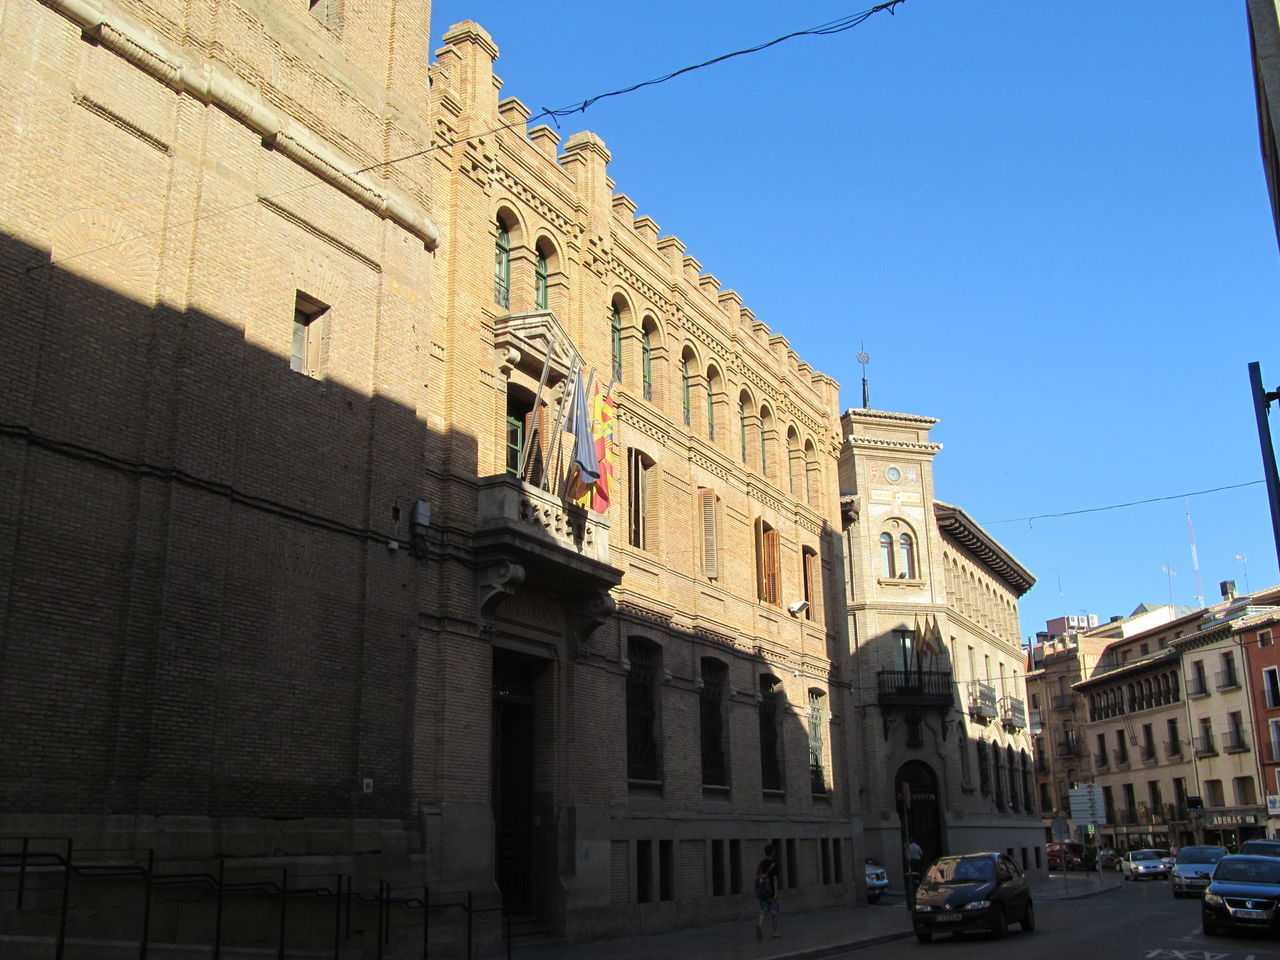 Low Angle View Of Building By Street